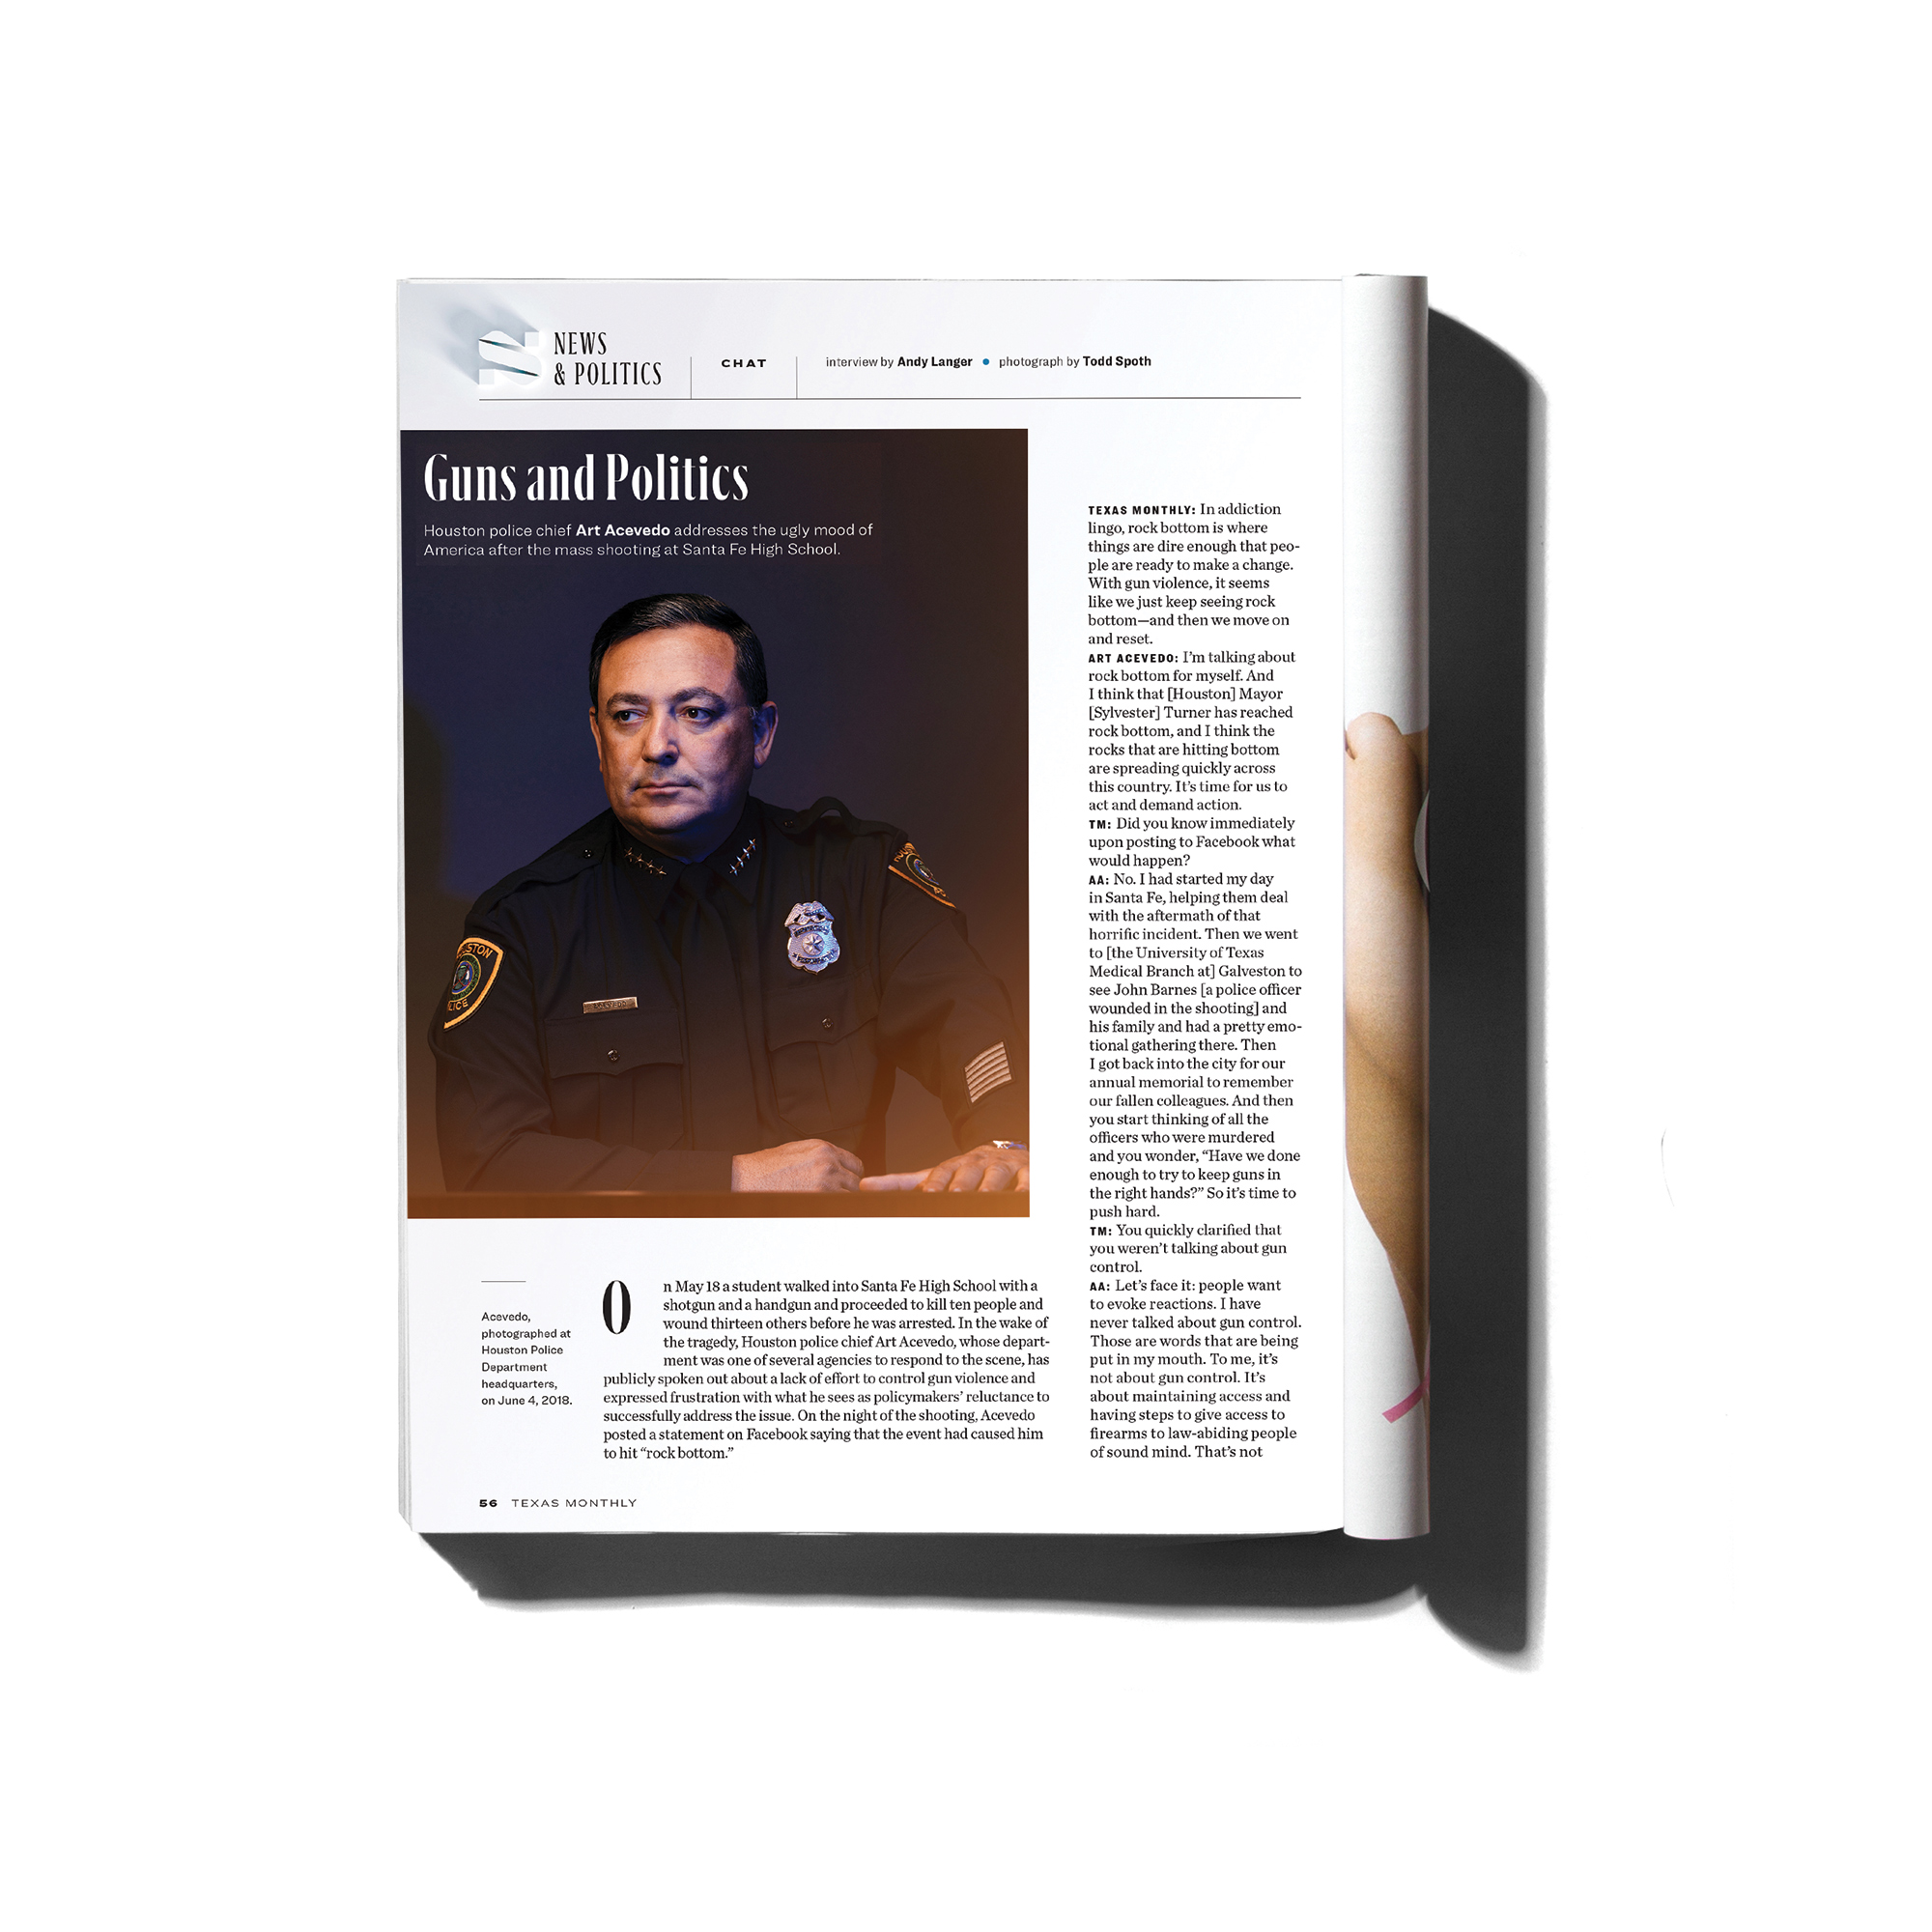 Houston police chief, Art Acevado, photographed by Houston editorial photographer, Todd Spoth, for client, Texas Monthly magazine.